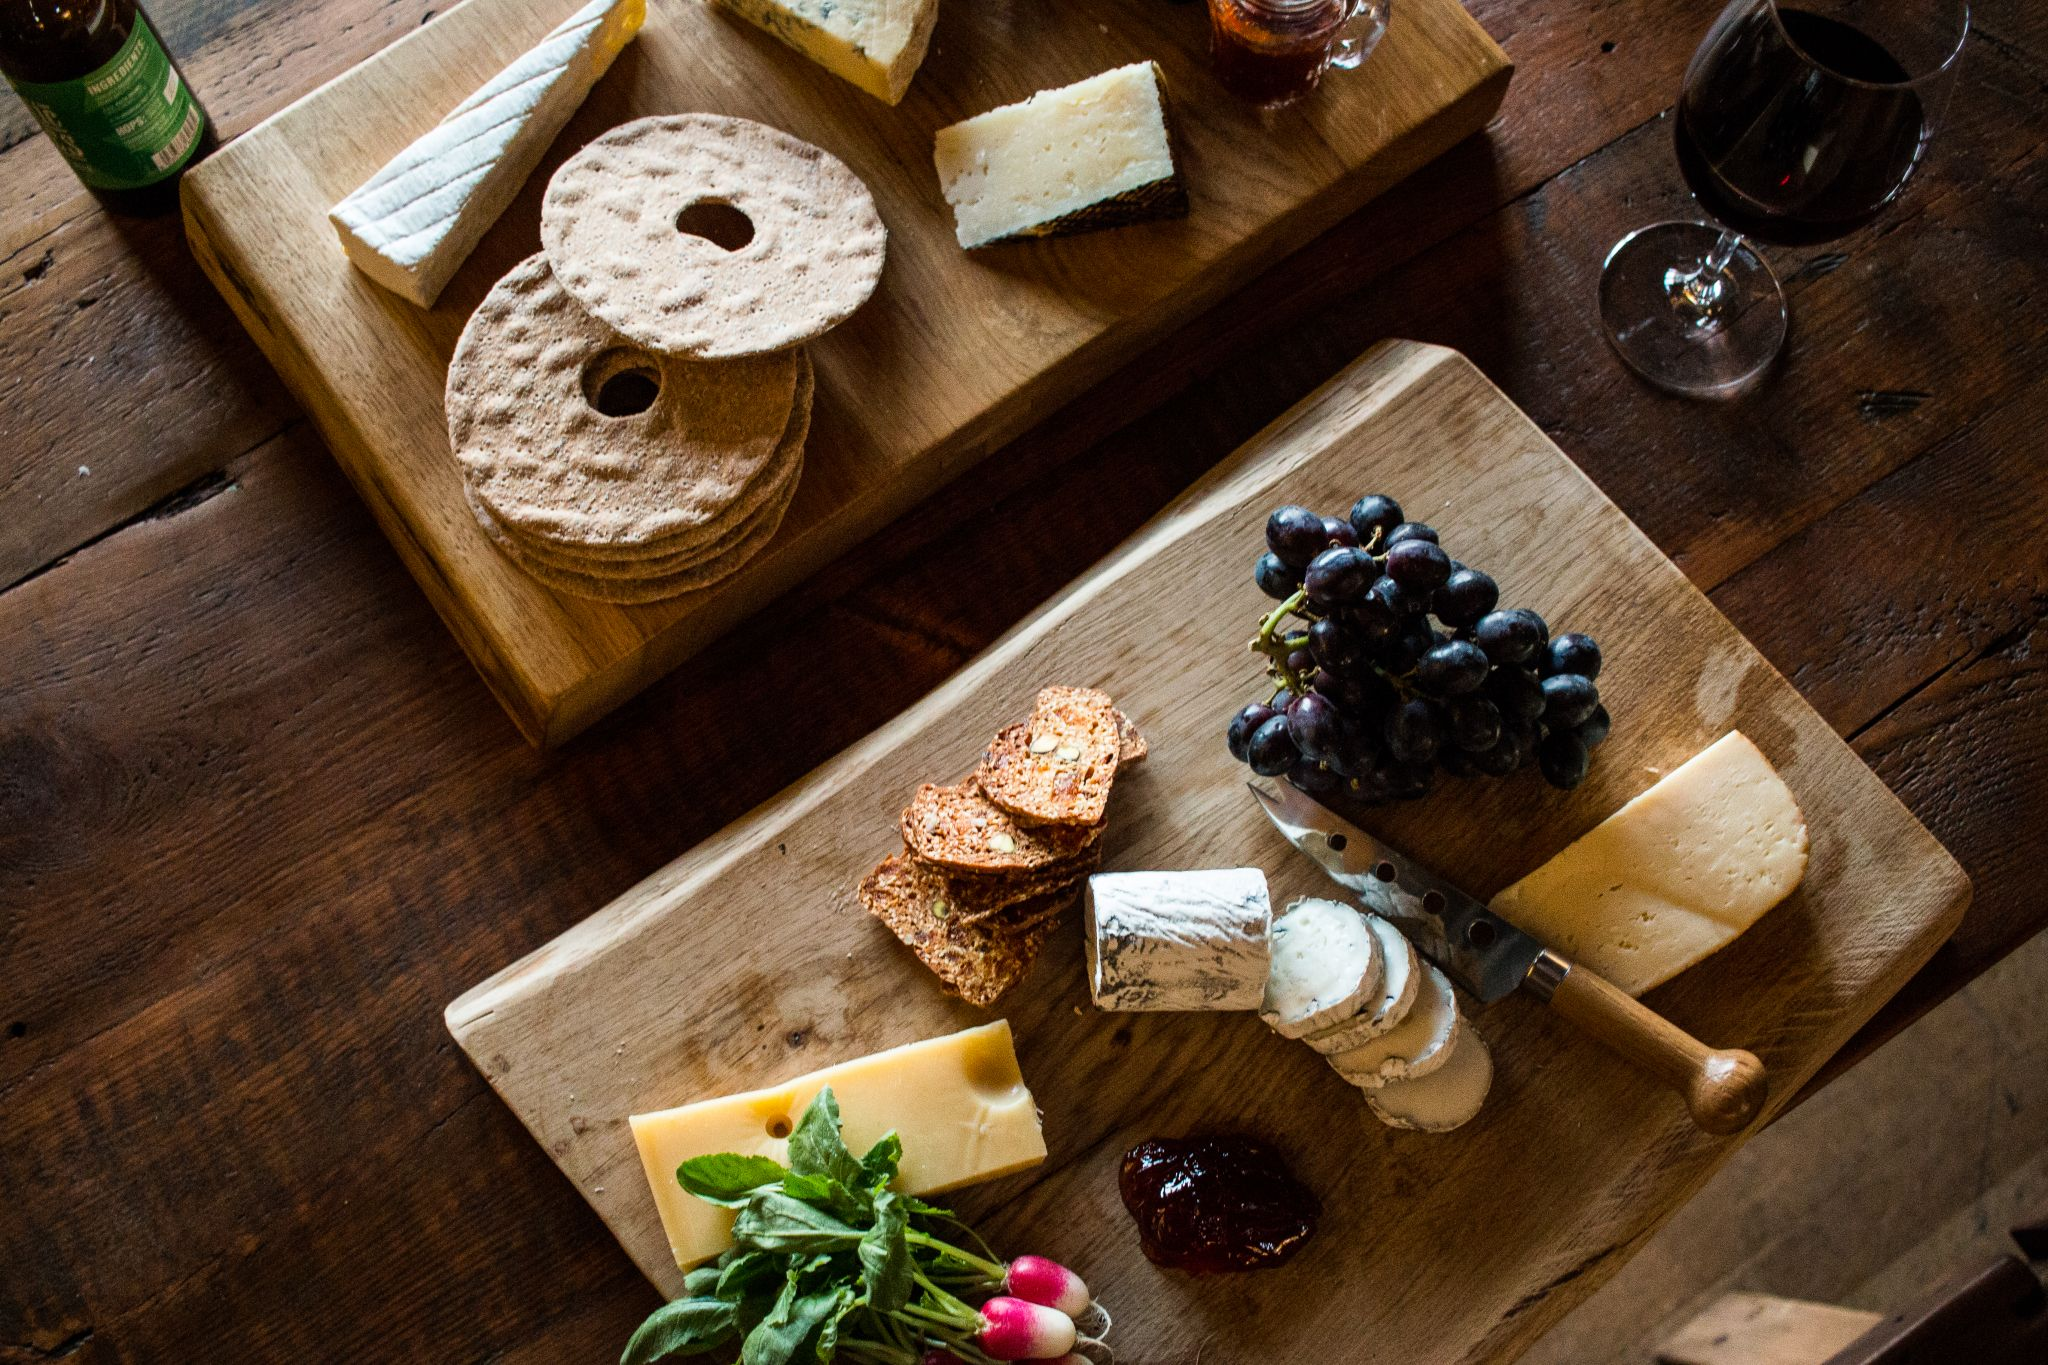 bonded warehouse food photography sunderland cheese board